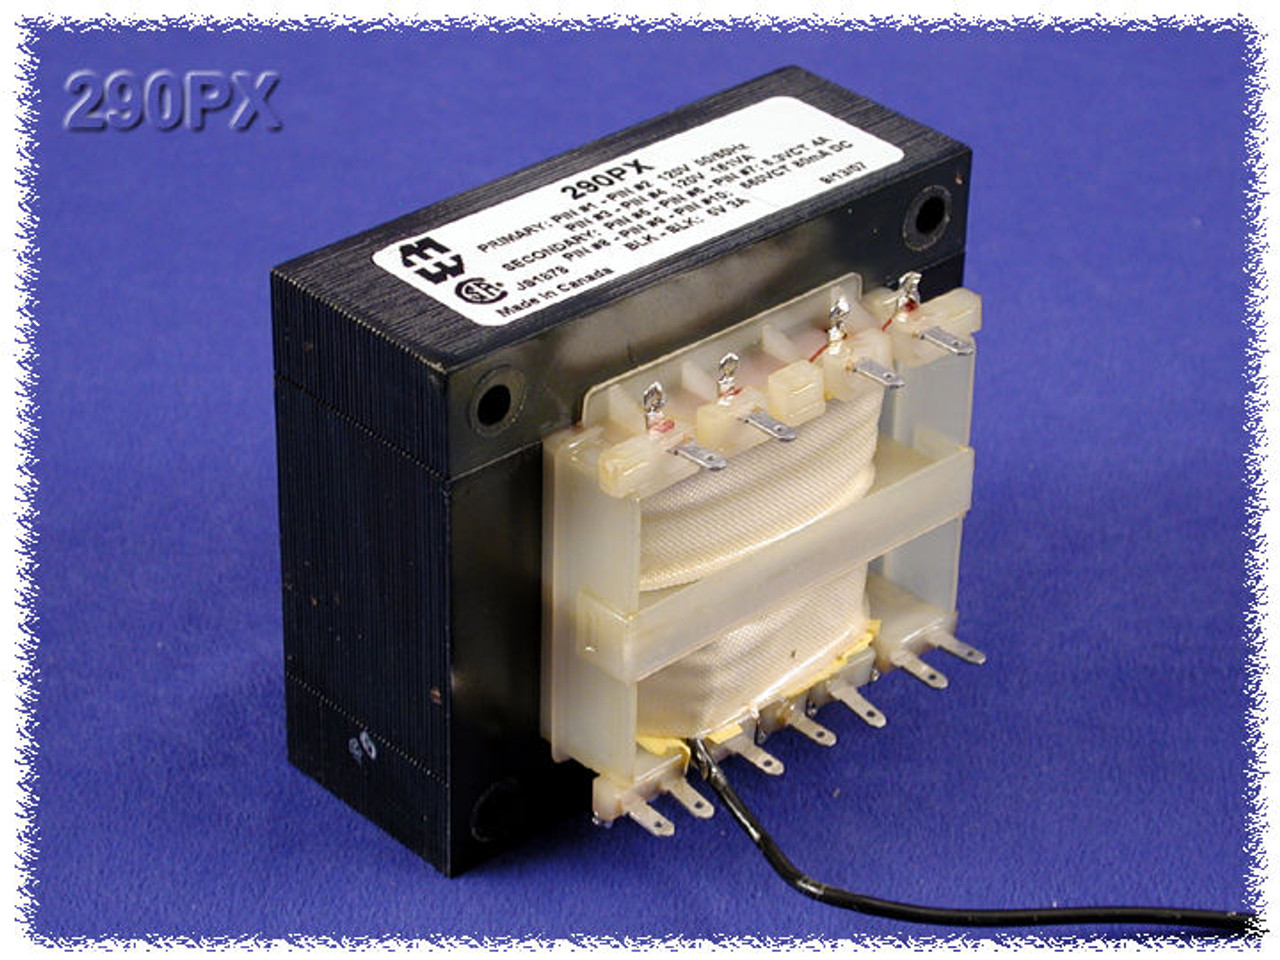 Hammond 290PX - Power Transformer